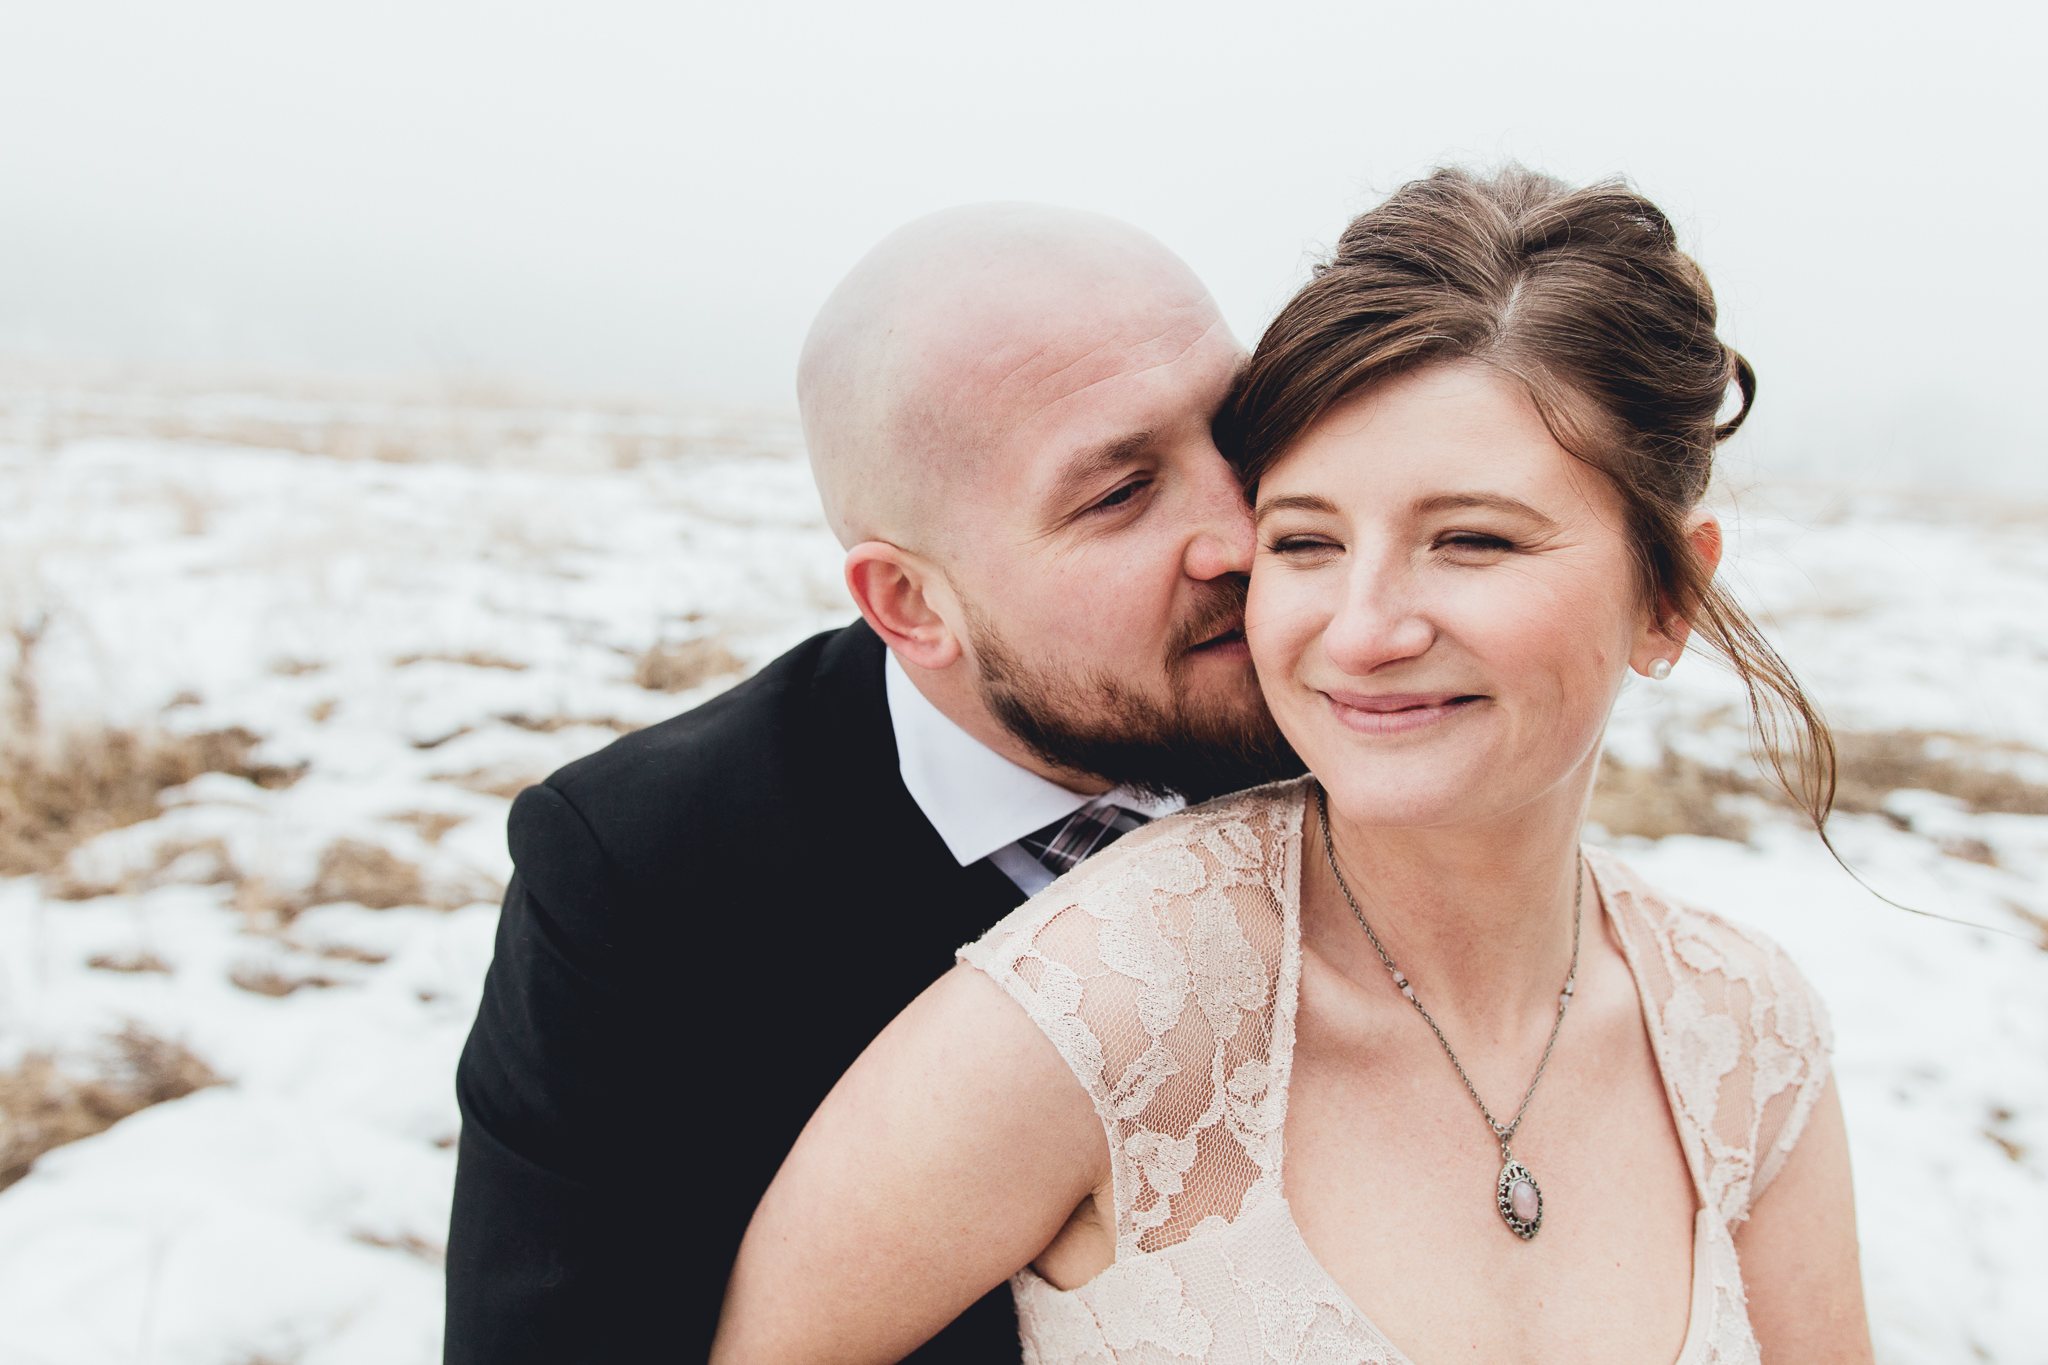 Groom kissing bride on cheek from behind at intimate winter wedding at Bow Valley Ranche